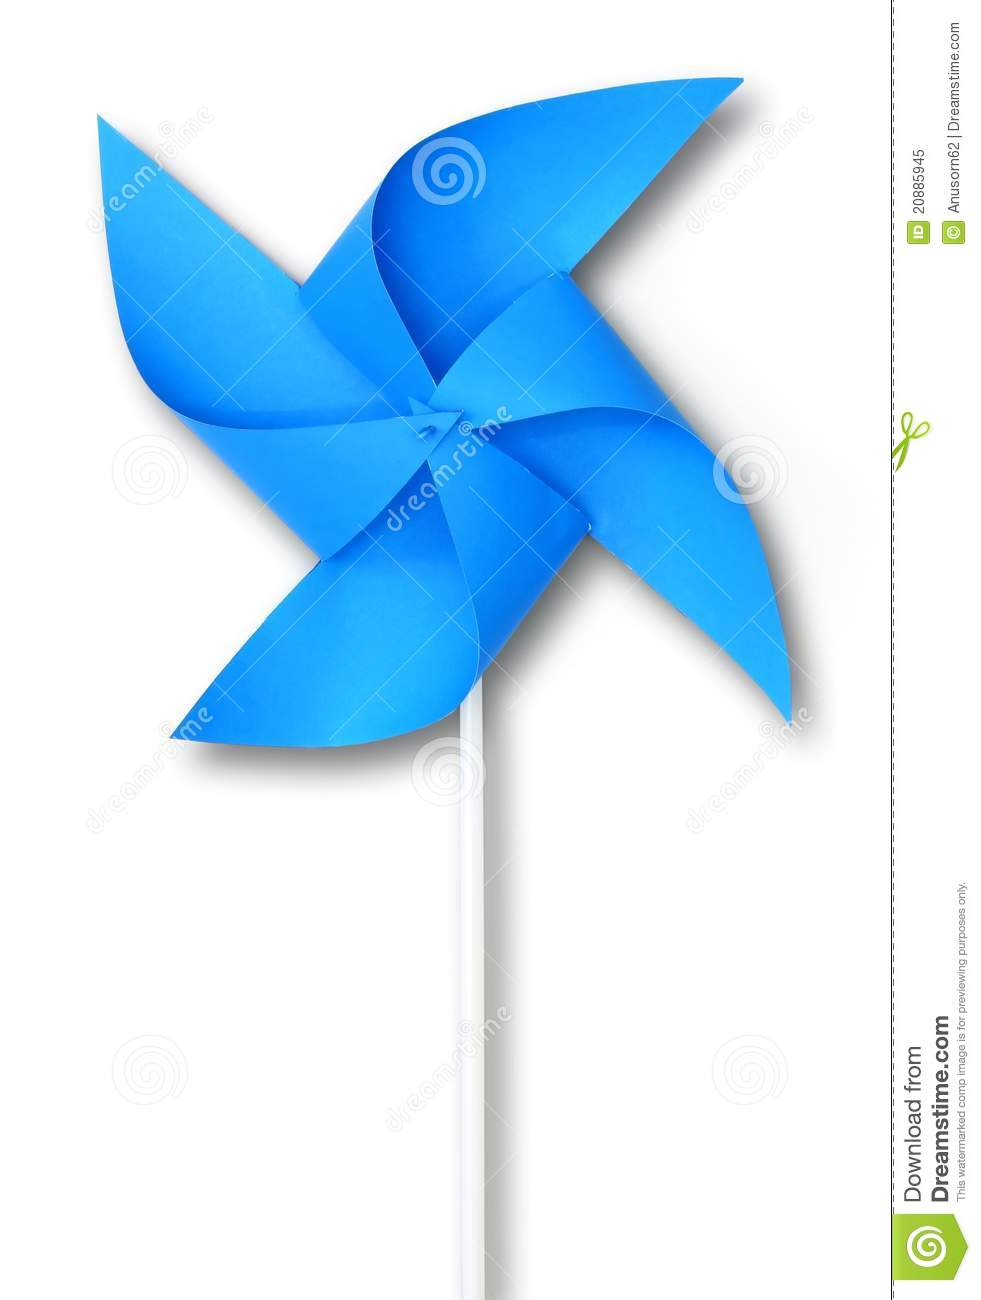 Blue Toy Windmill Royalty Free Stock Photo - Image: 20885945